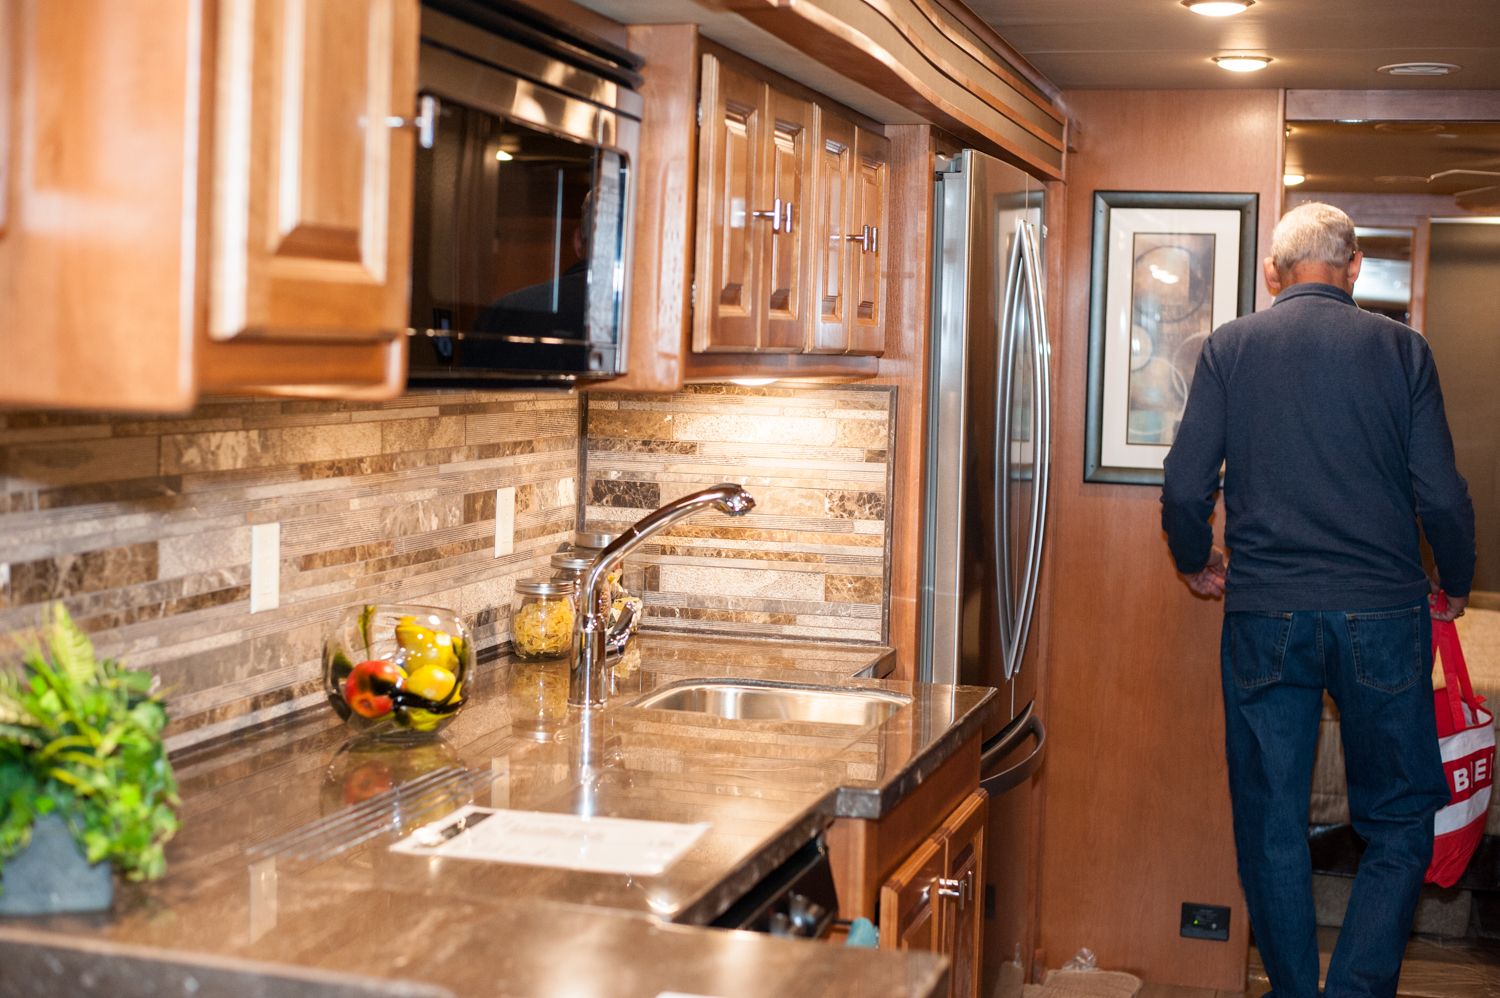 $281,147 - Poulsbo RV's 2019 Tiffin Allegro Red 37PA.{ } The Tacoma RV Show is happening this weekend (Jan. 17-20) at the Tacoma Dome, with hundreds of RV's on display and more than 100 brands at the show. Since we are Seattle 'Refined' - you know we had to check out the most expensive, swankiest vehicles at the show! (Image: Elizabeth Crook / Seattle Refined)